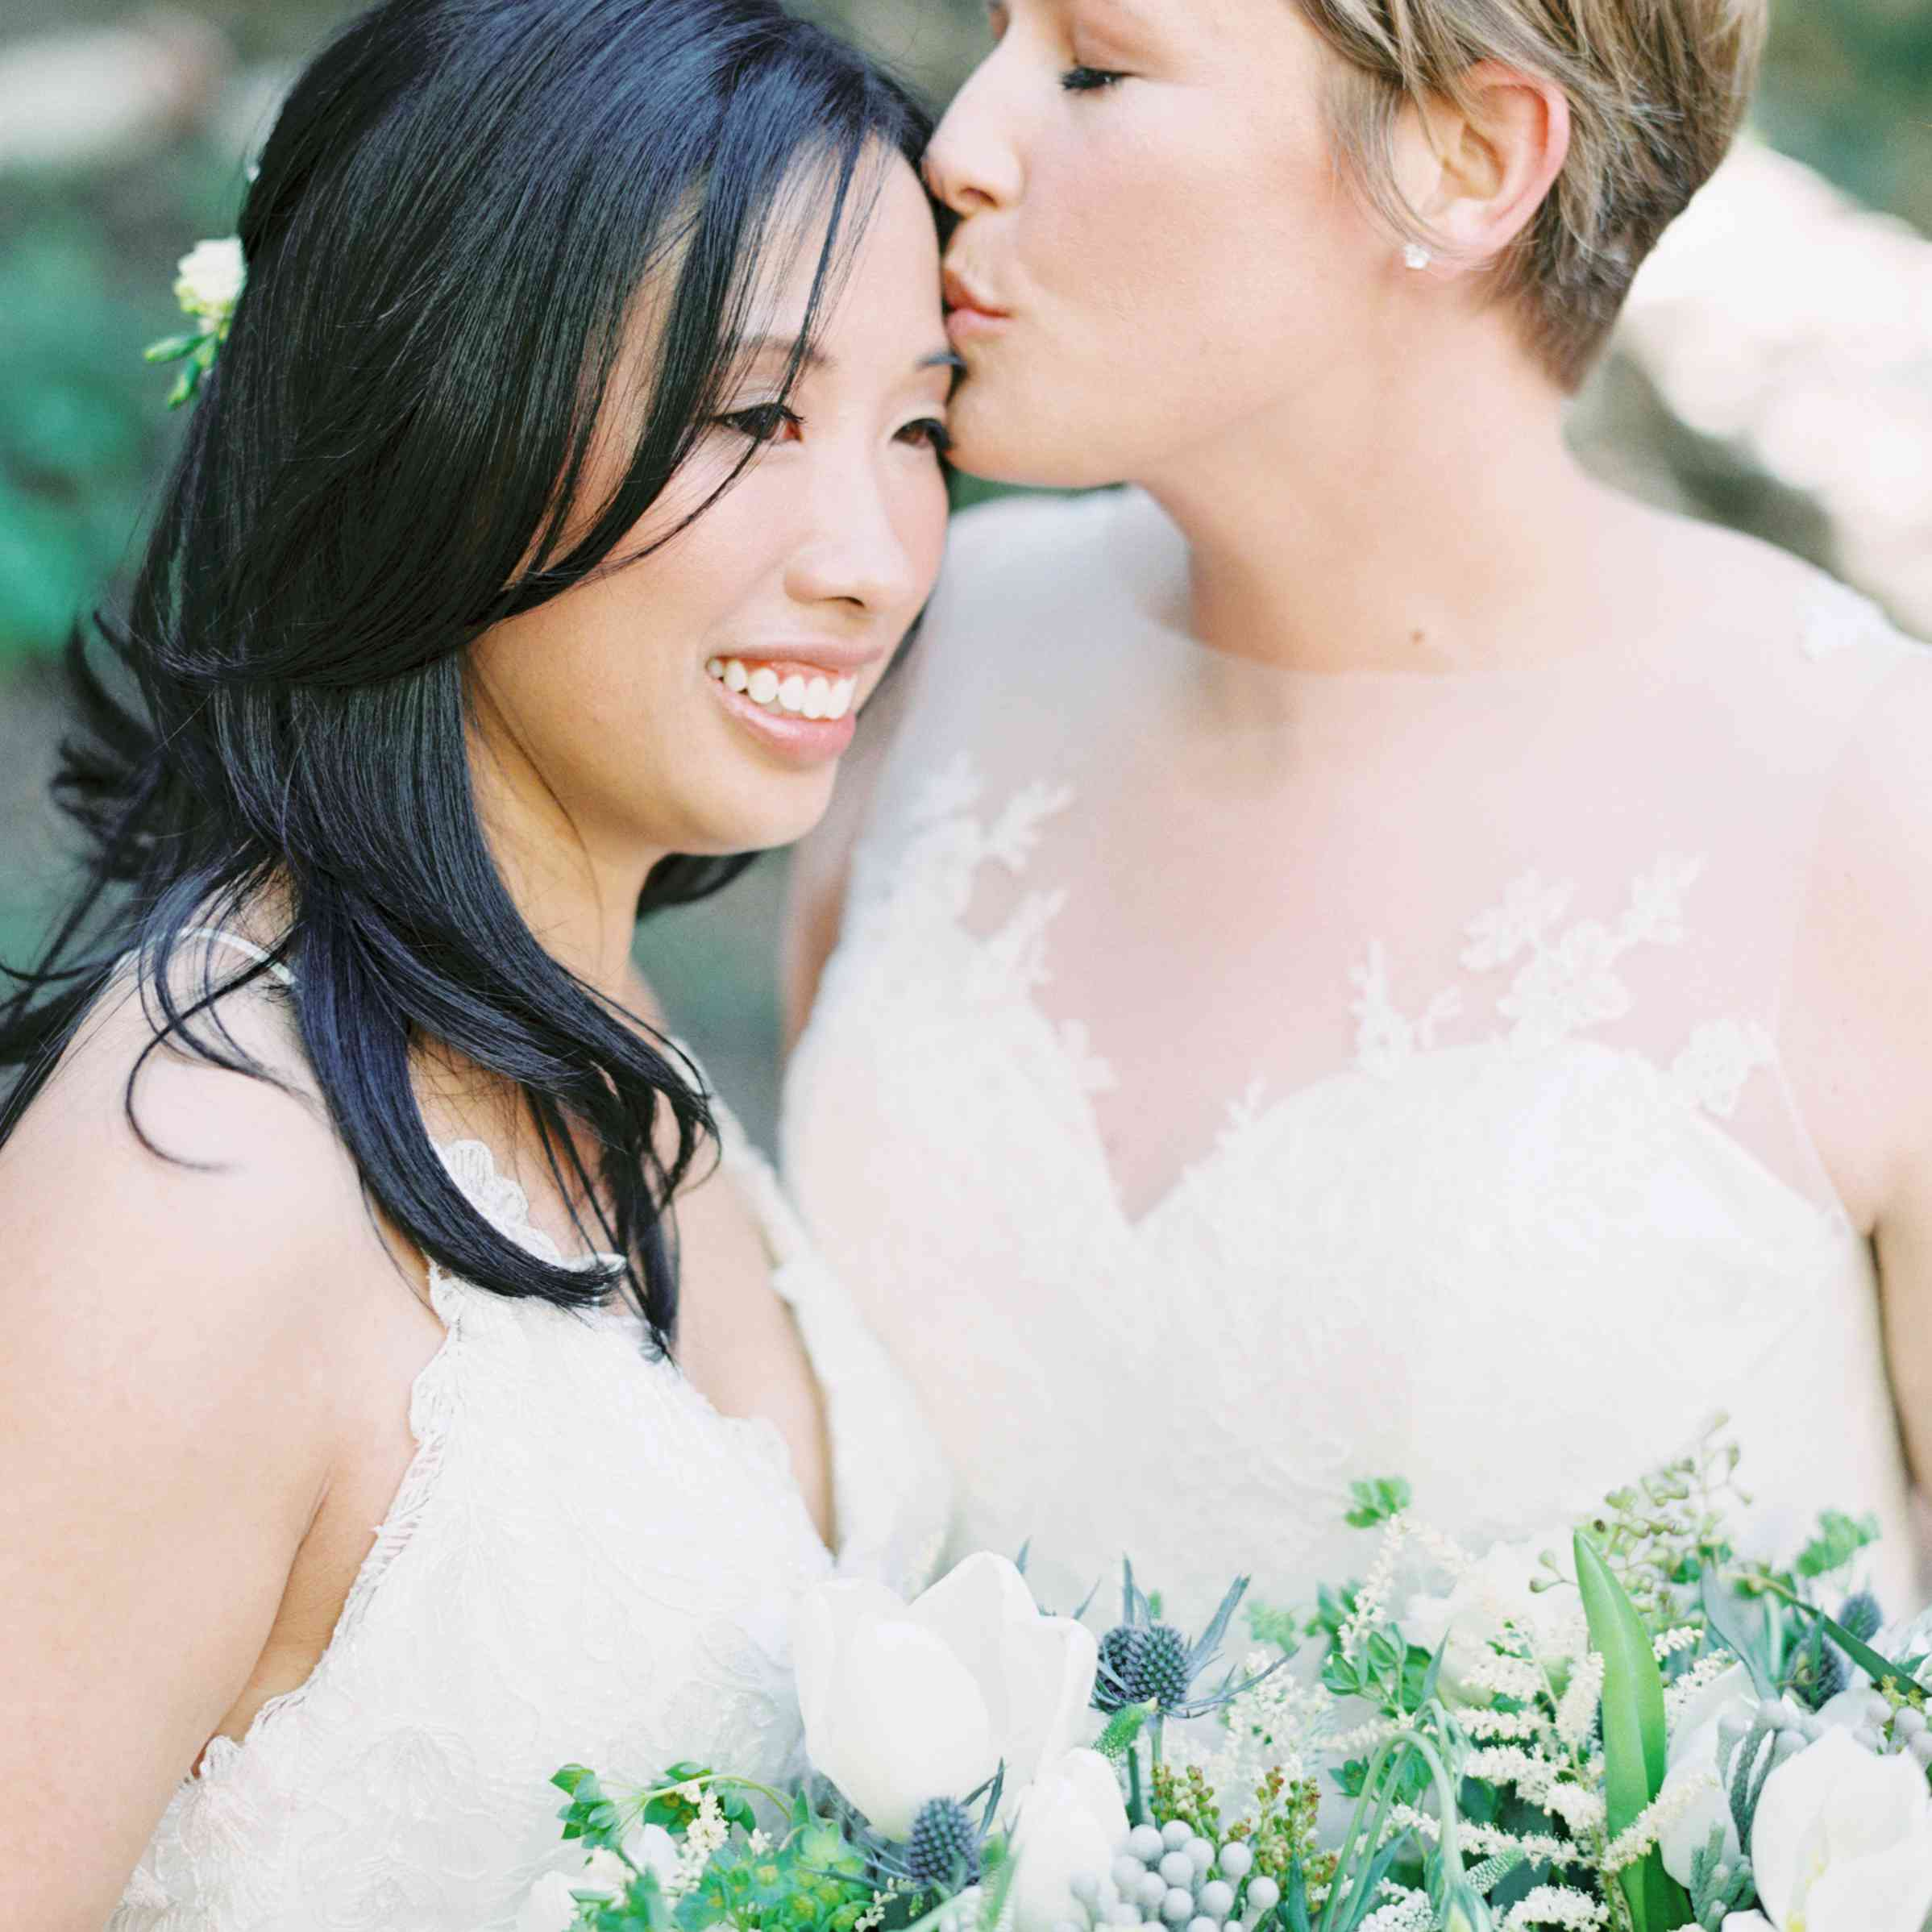 Bride kissing bride on the forehead